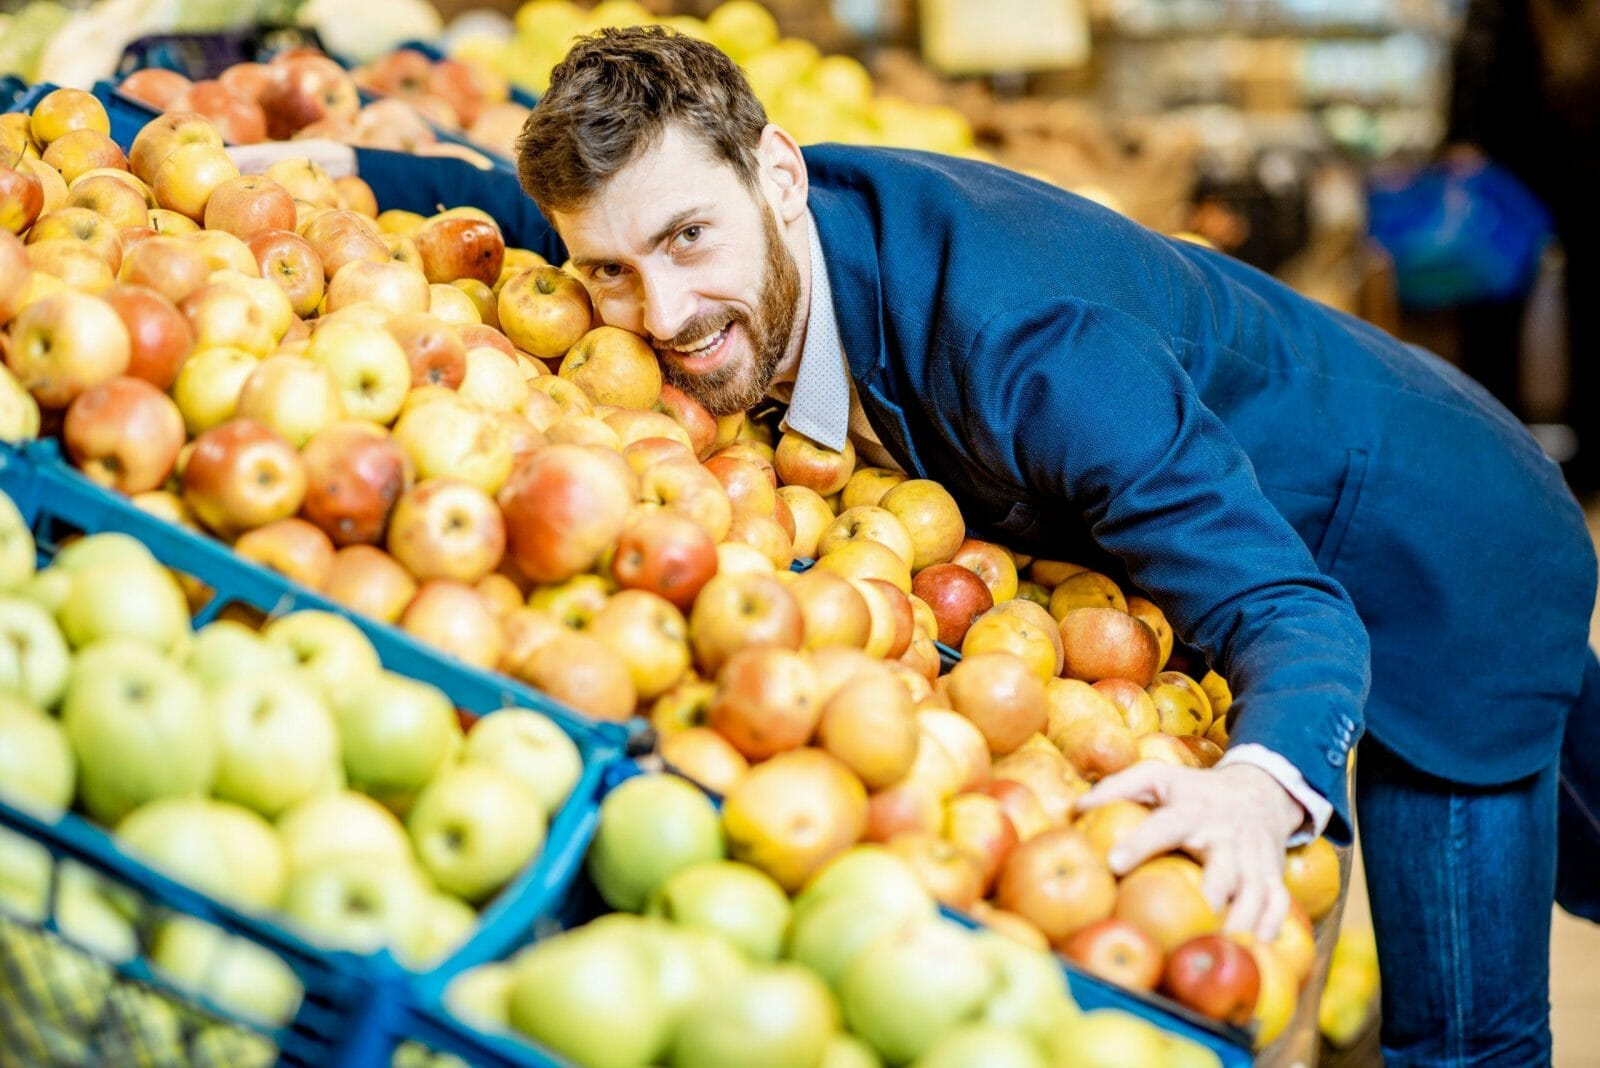 Funny portrait of a businessman hugging a pile of apples in the supermarket in the department with fruits and vegetables